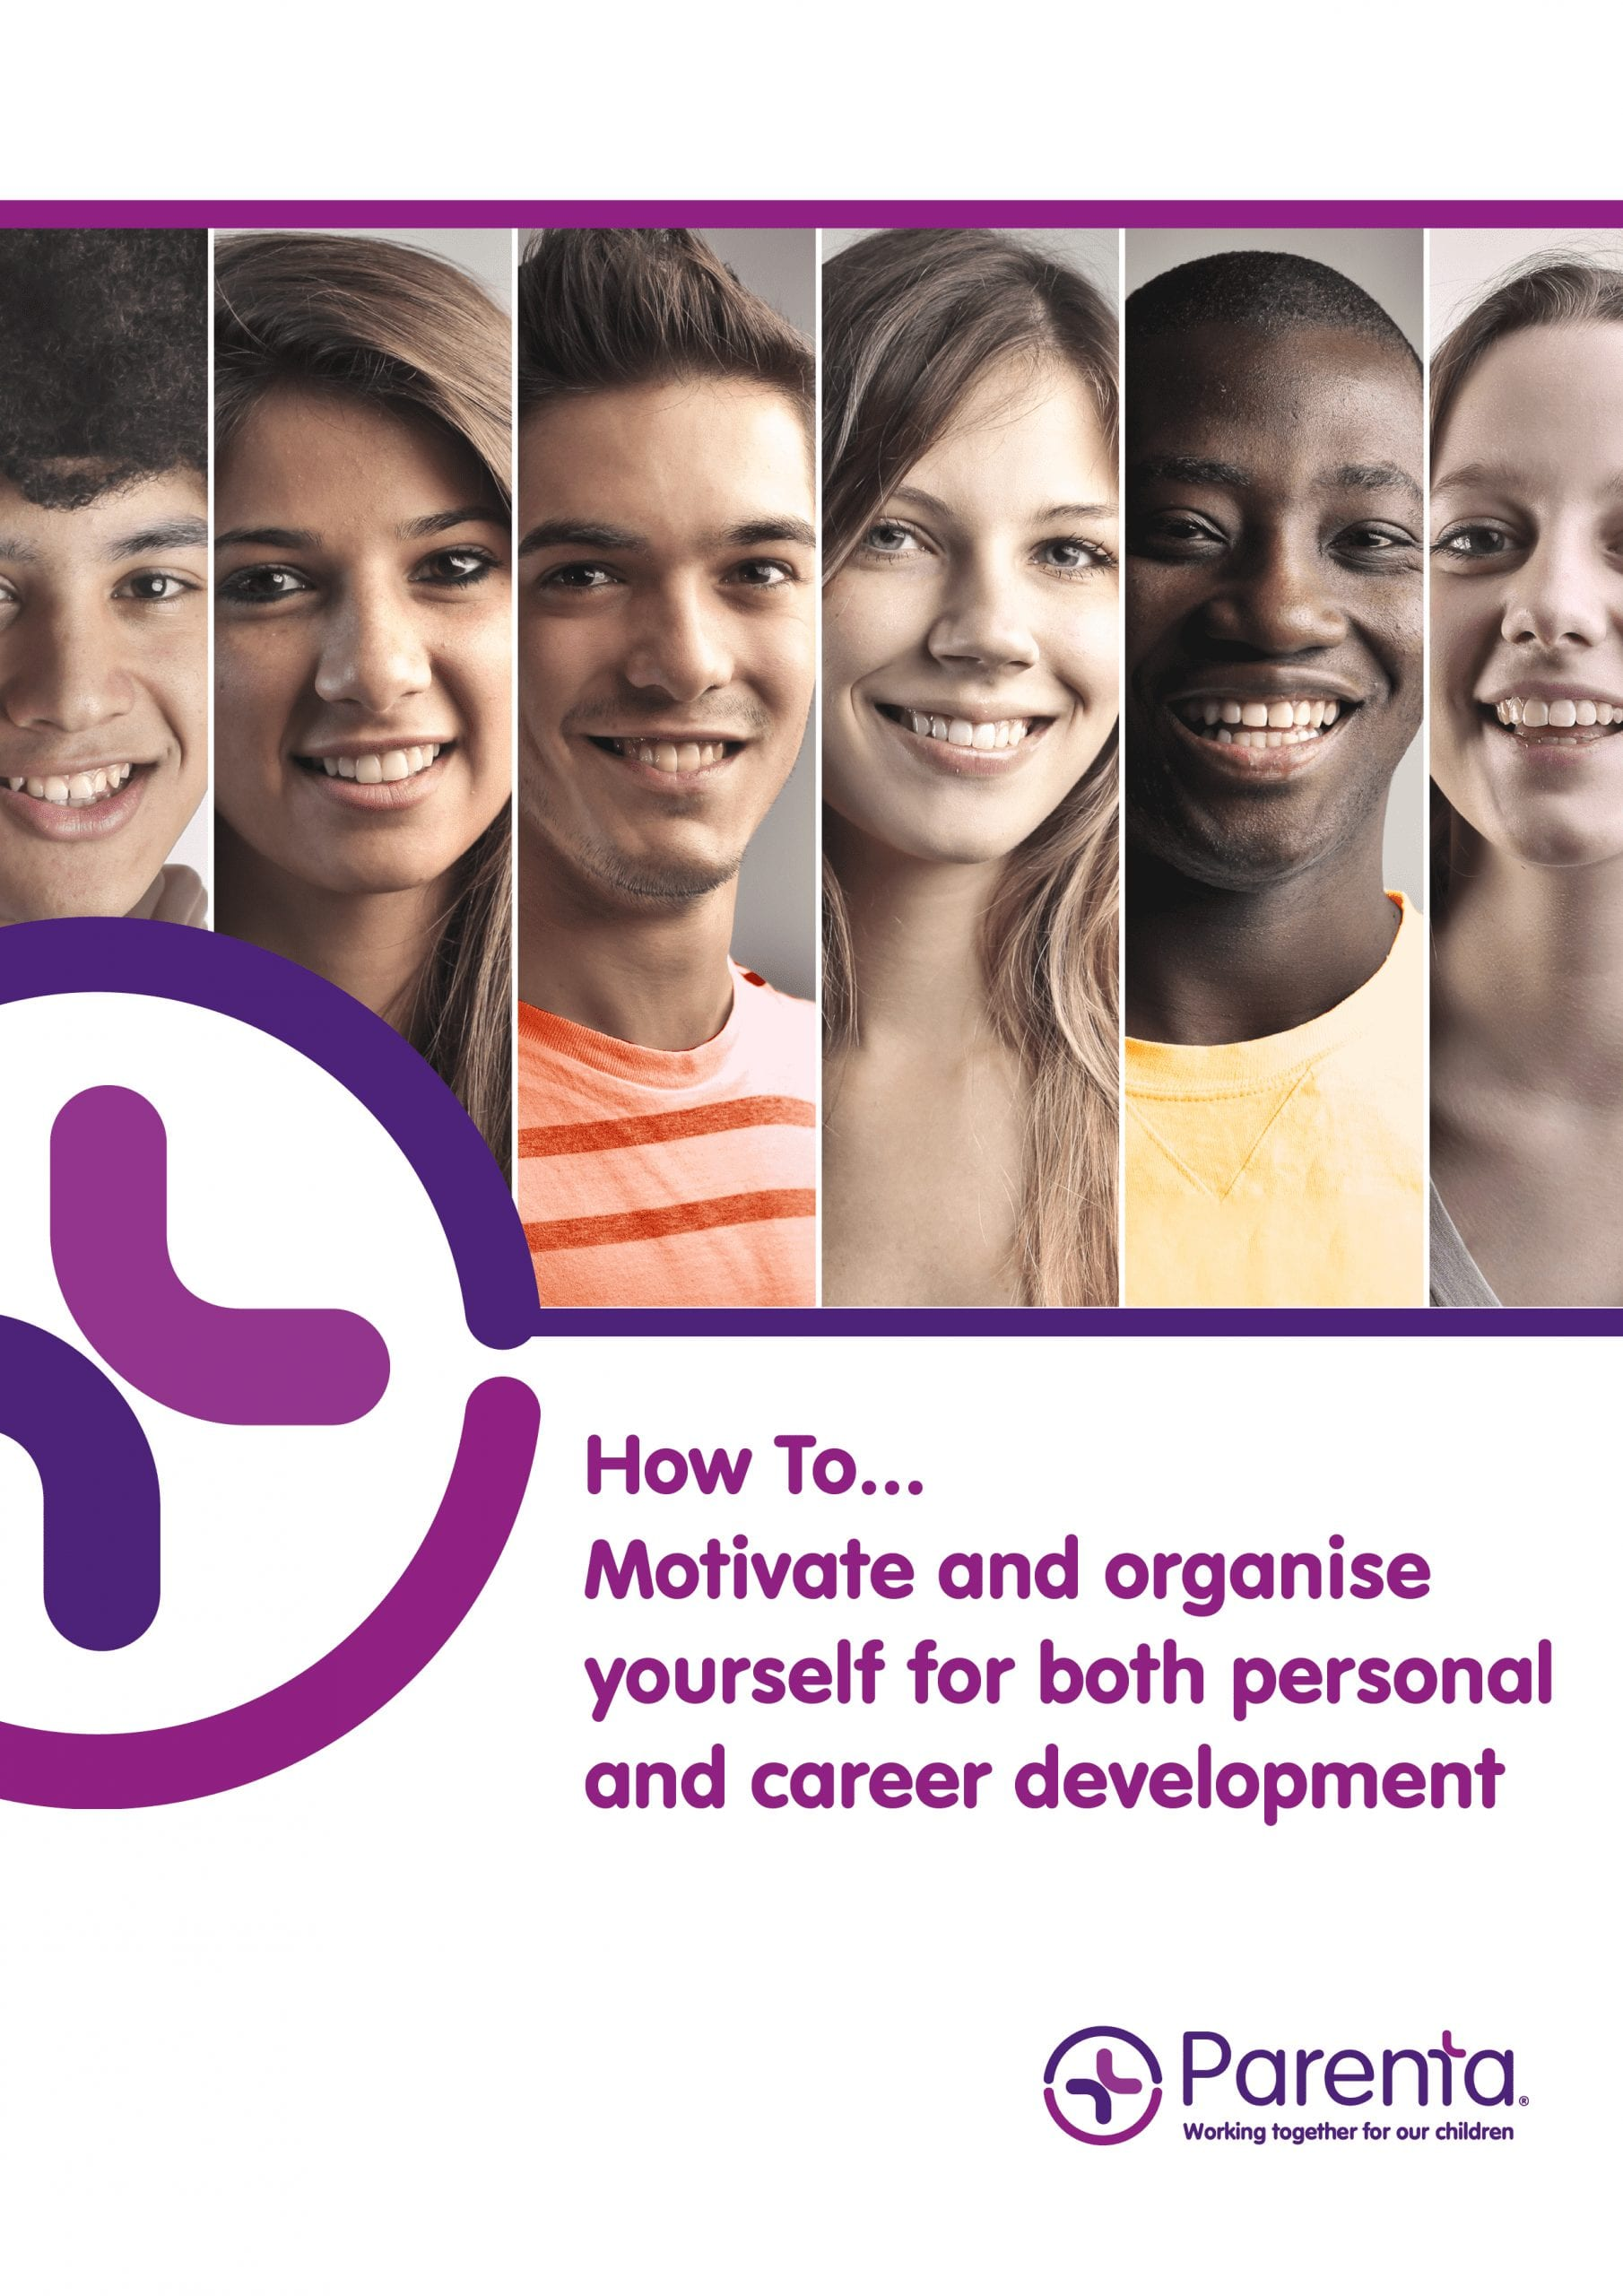 How To Guide… Motivate and organise yourself for both personal and career development